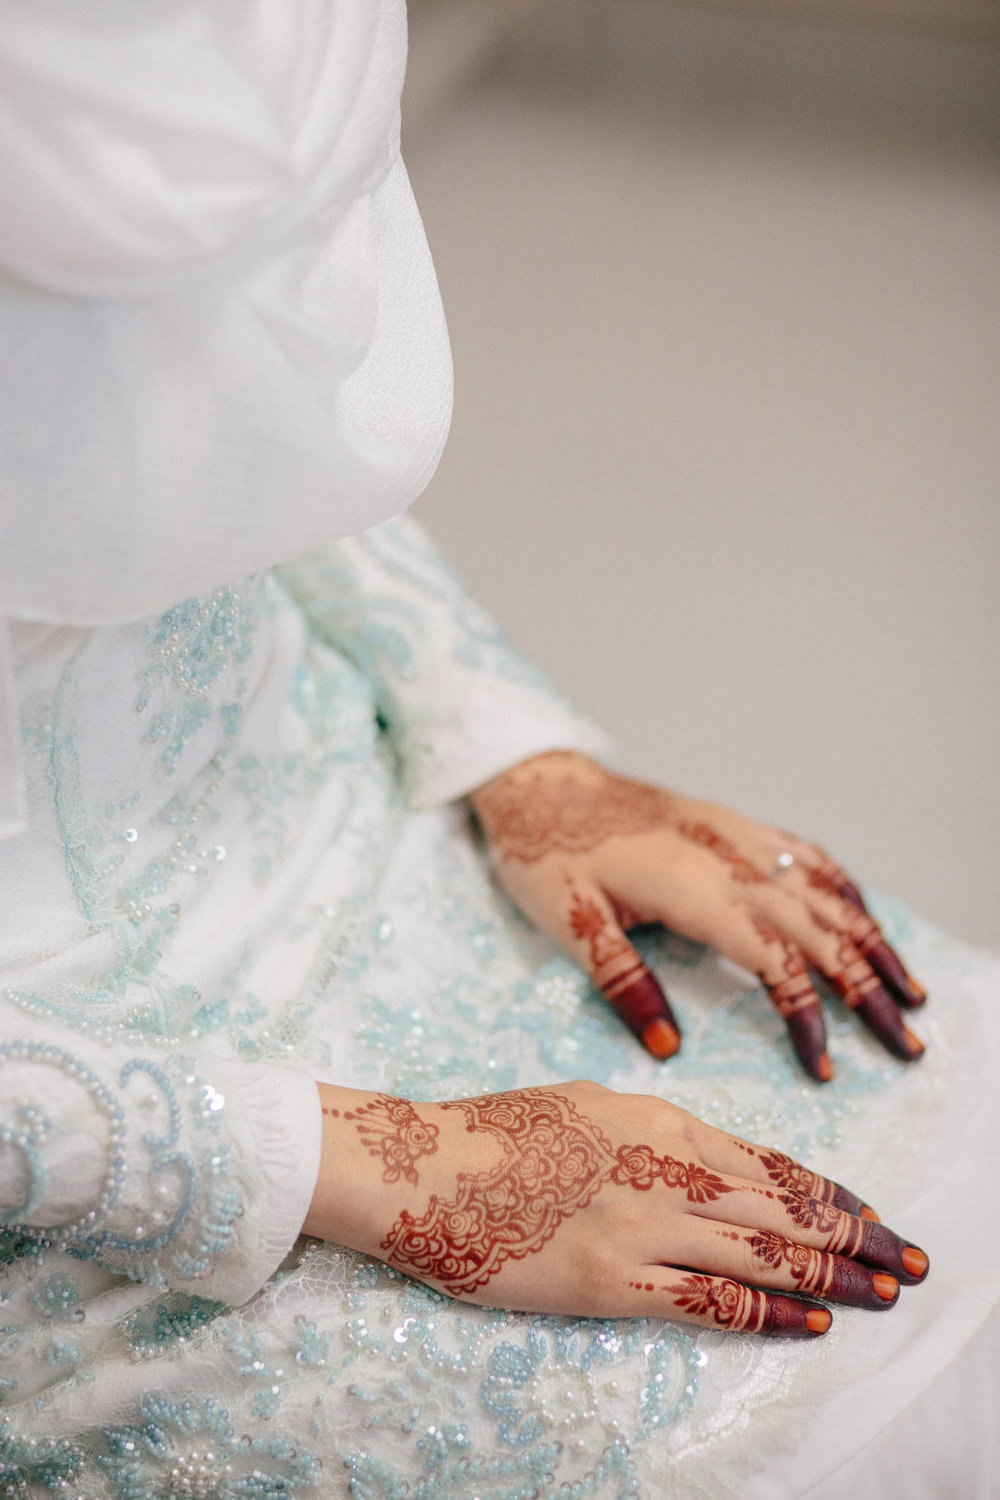 singapore-wedding-photographer-sharalyn-syazwan-005.jpg